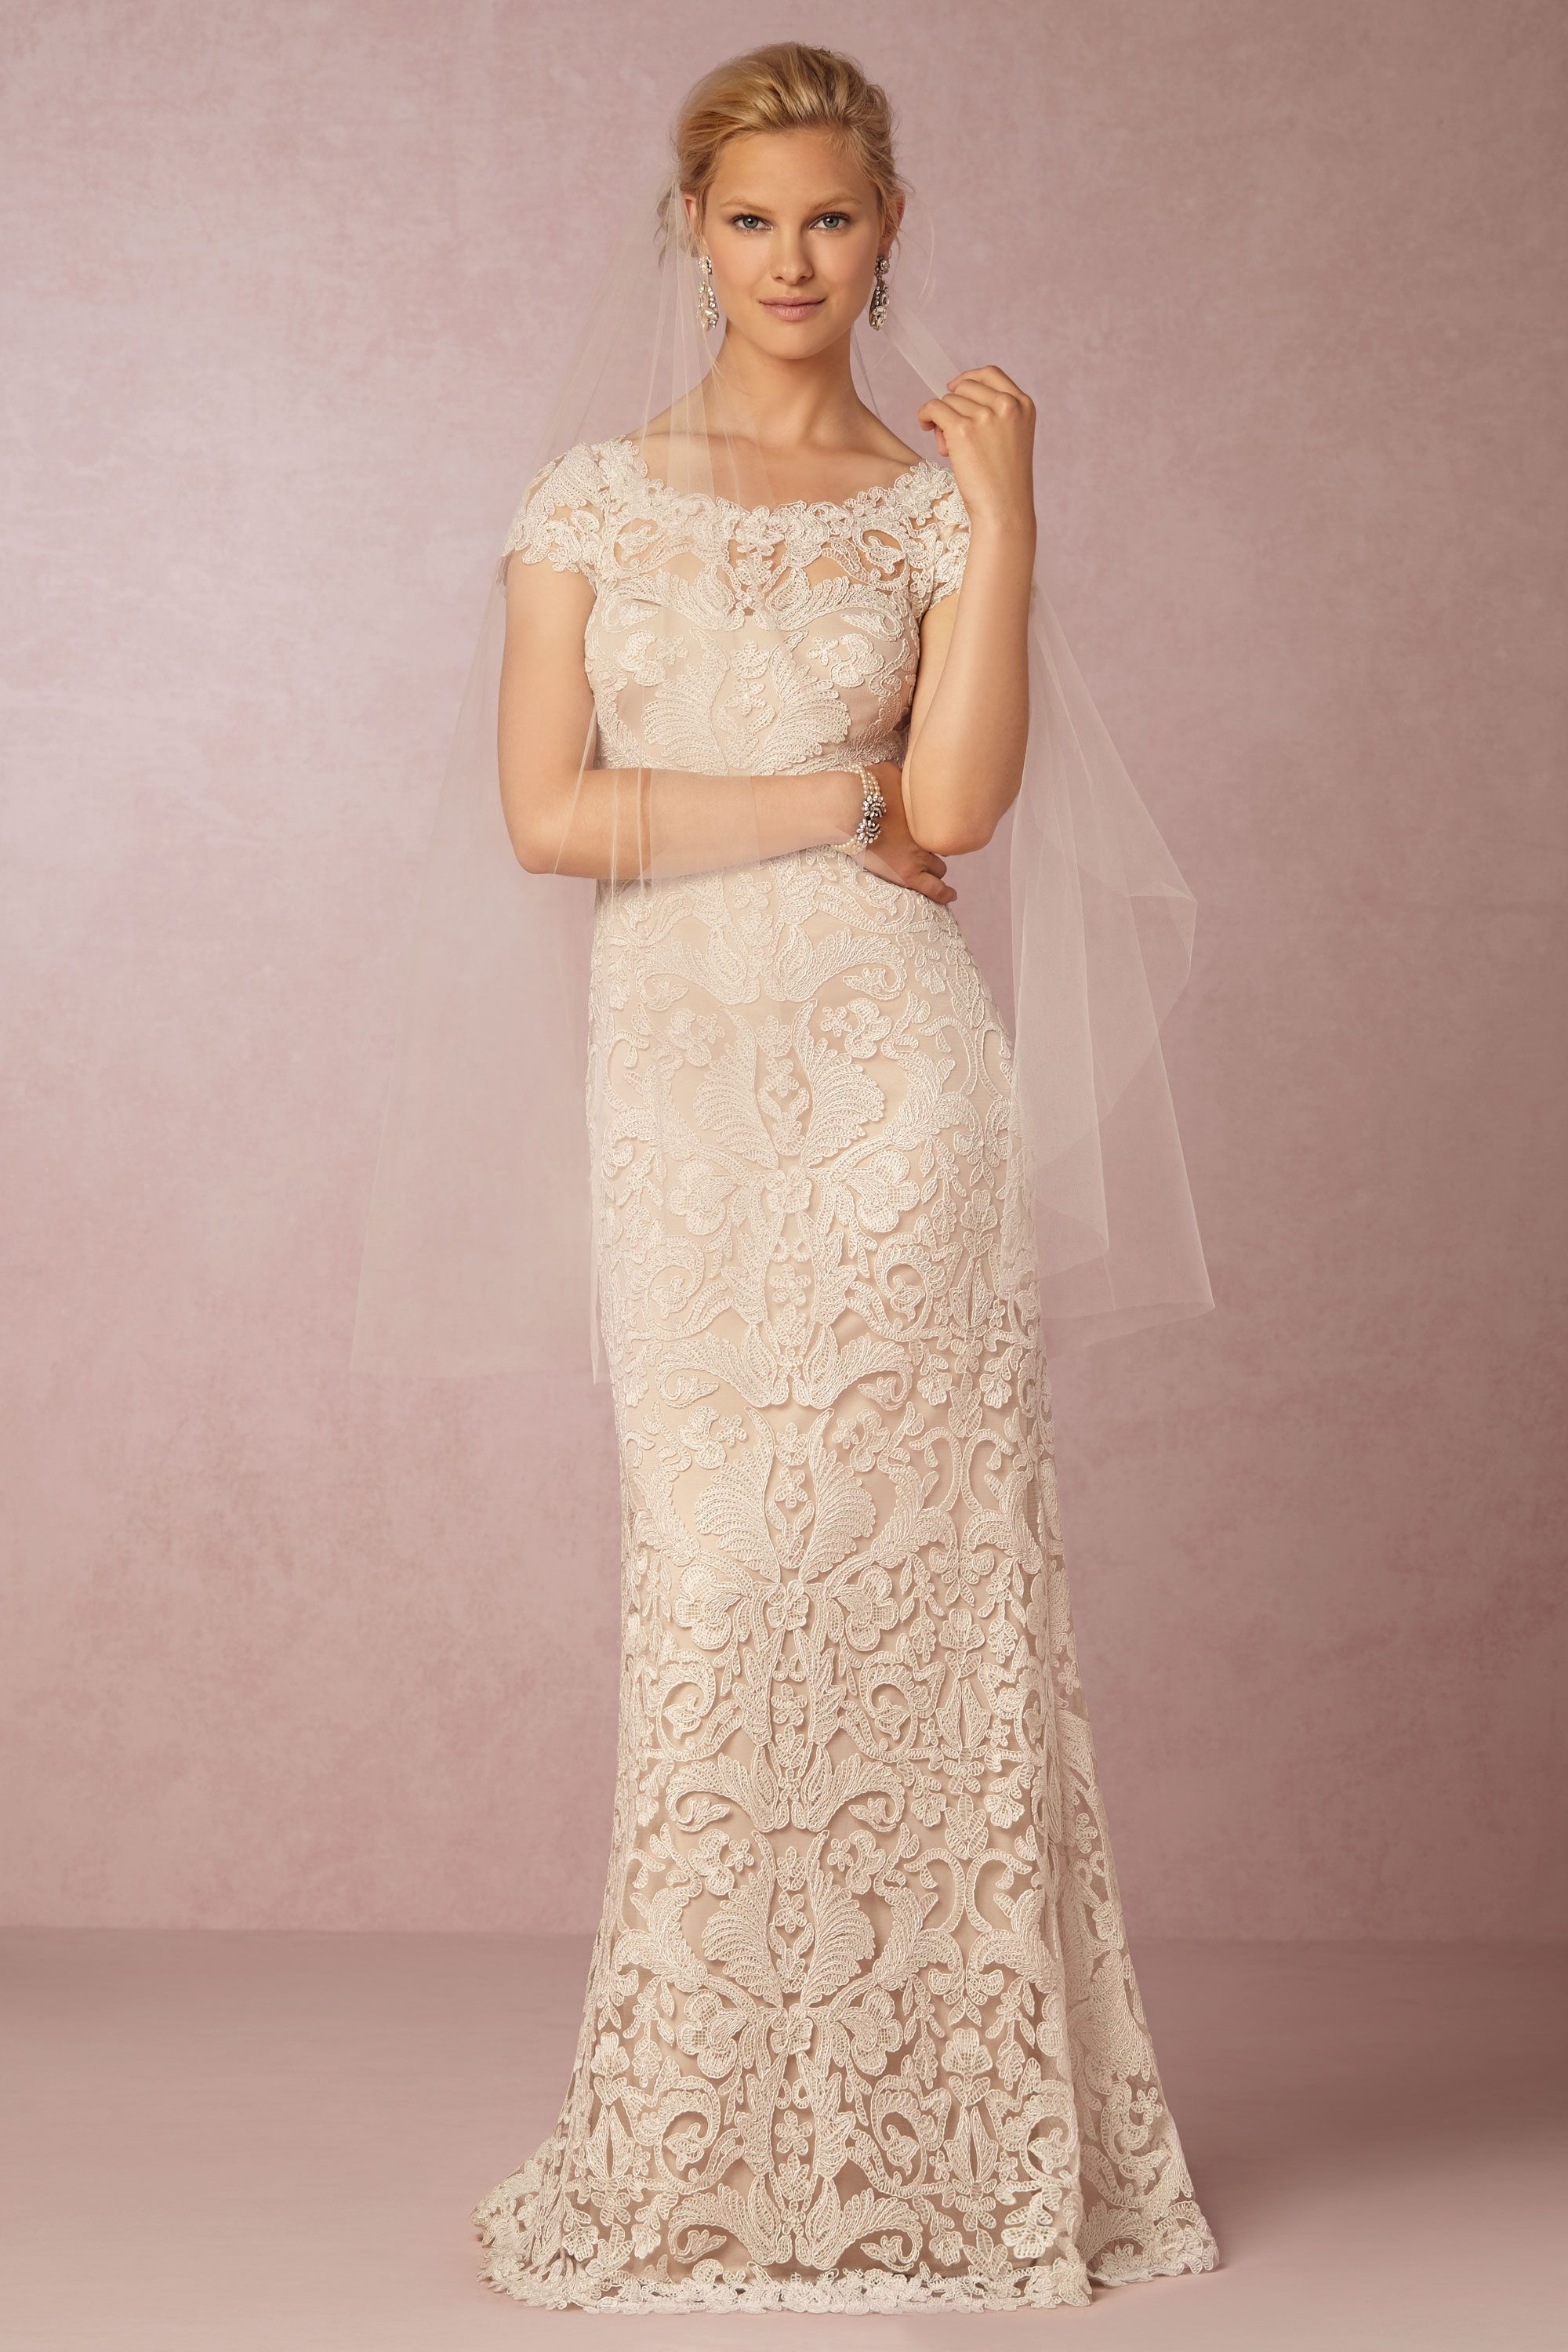 Wedding Anthropology Wedding Dresses wedding dresses vintage simple gowns bhldn august gown gown